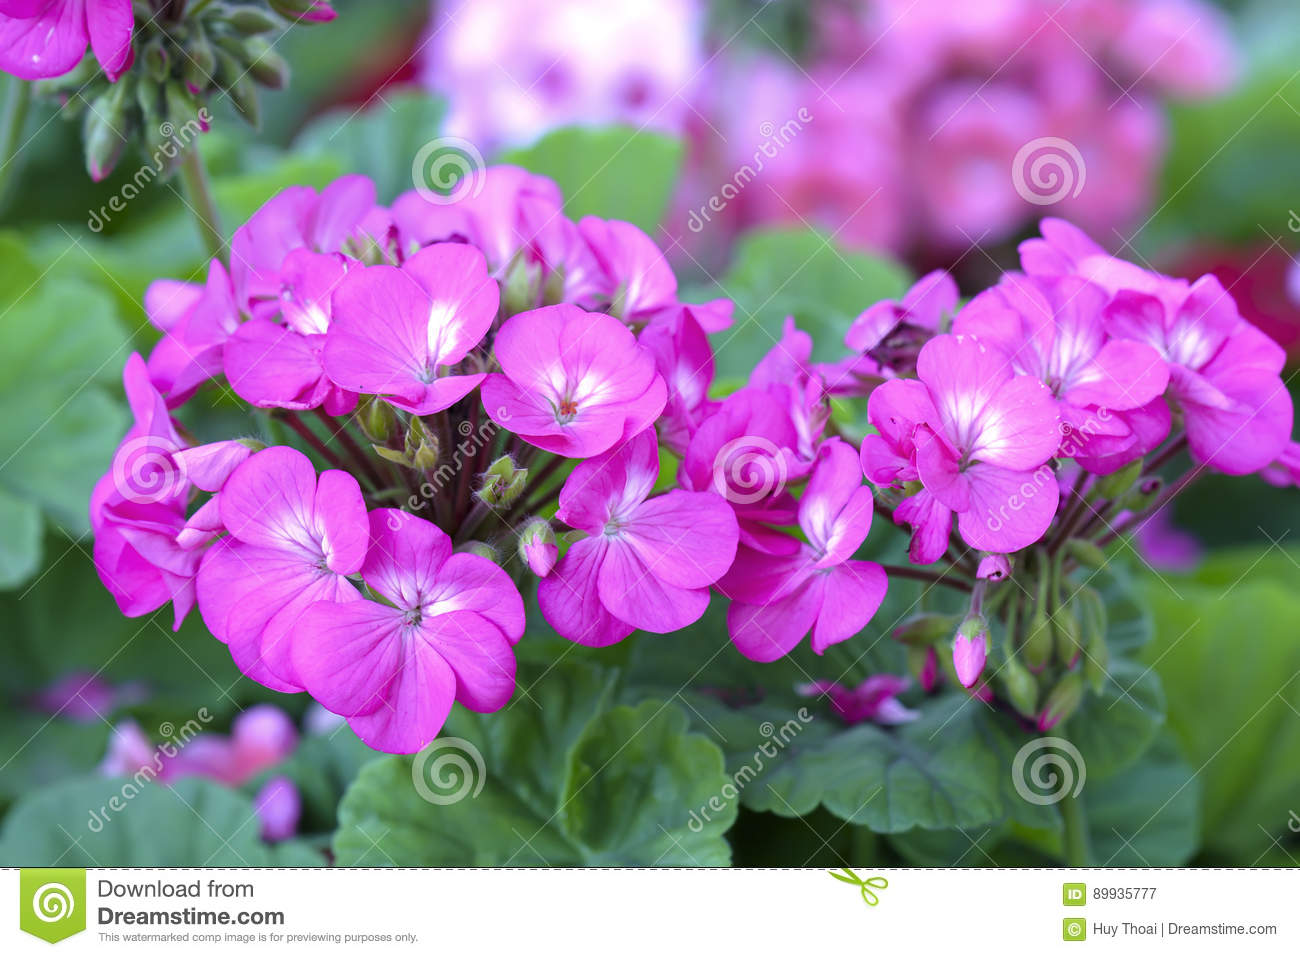 Geranium Flower blooming colorful pink, white, purple